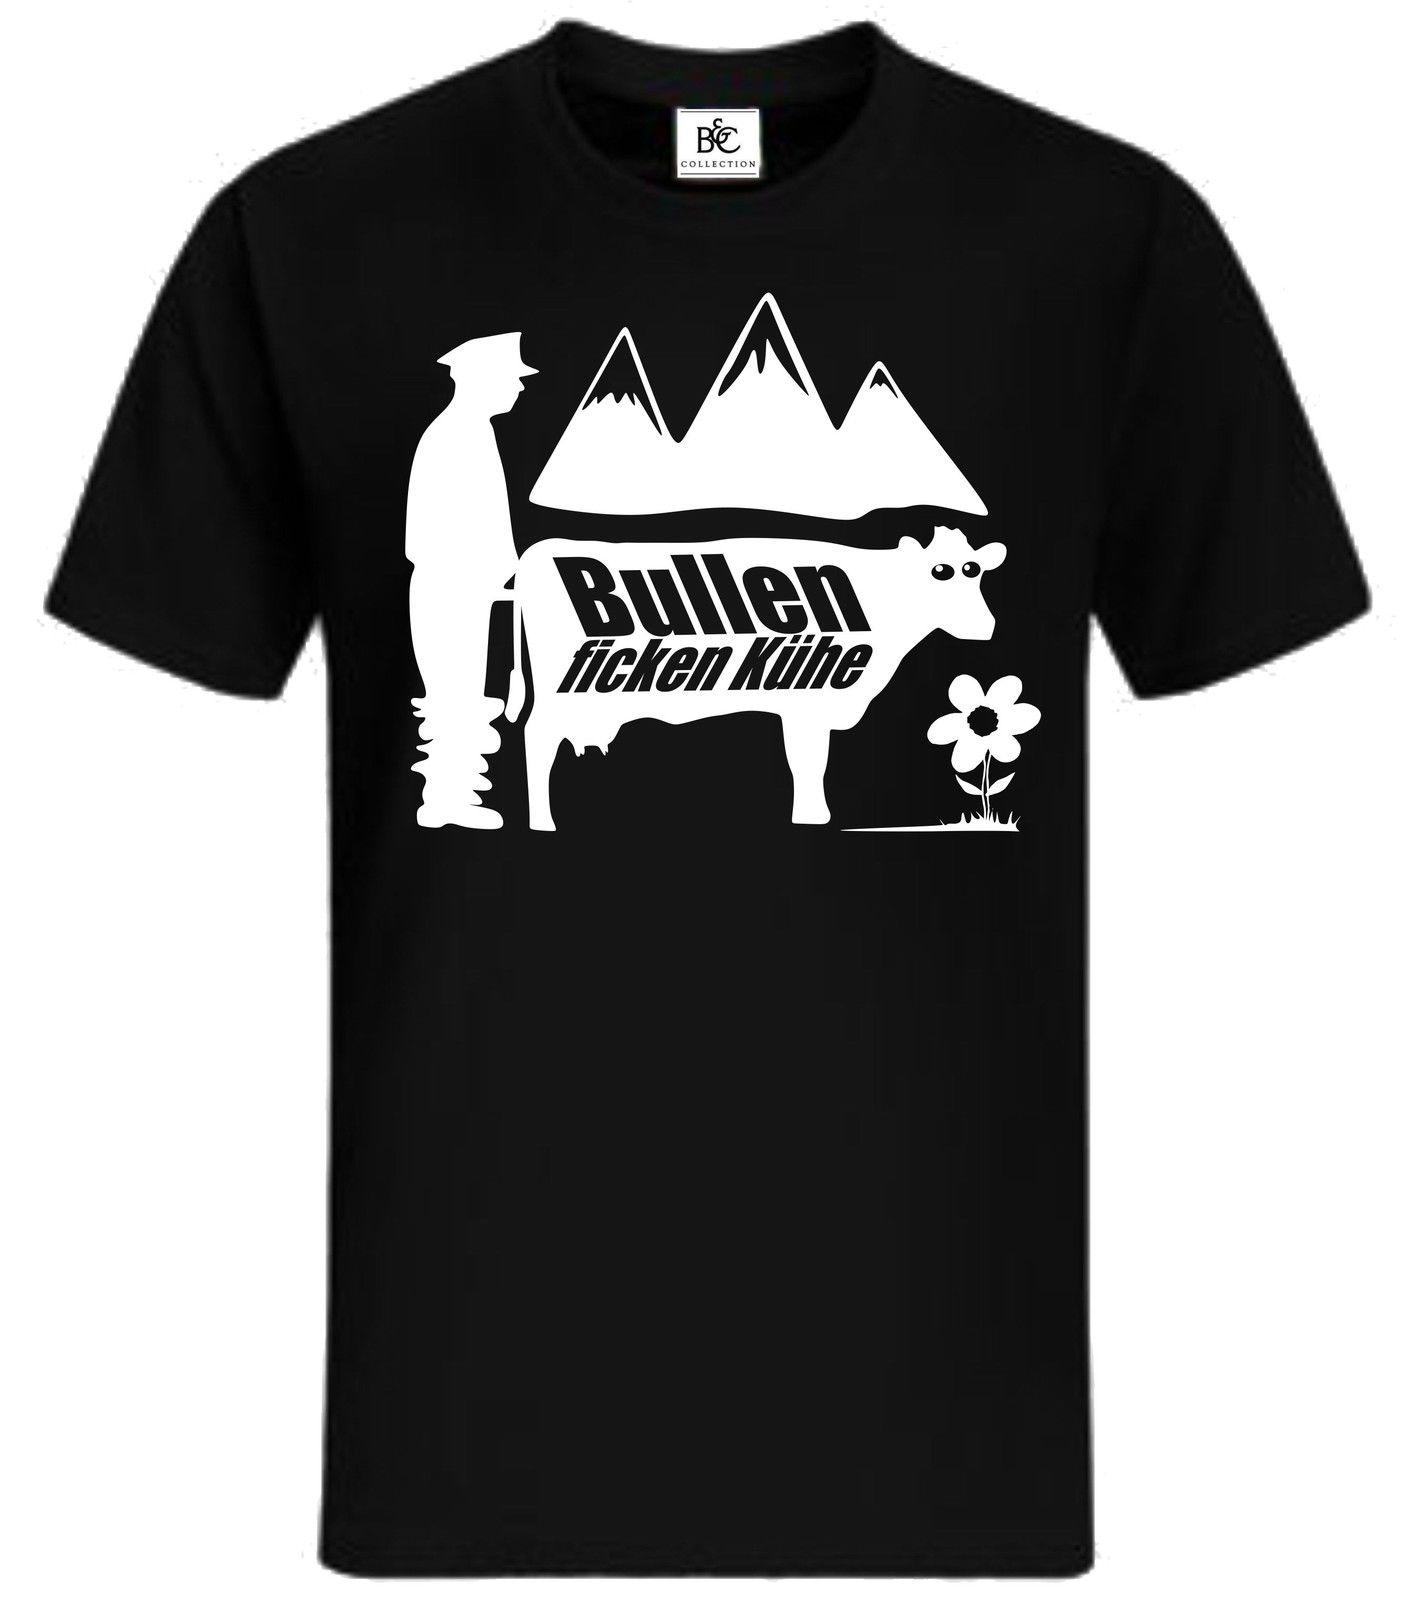 Bullen T Shirt,Sprüche,Party,Fun,Lustig,S,M,L,Xl,Xxl,Fußball,Hools,Ultra T  Shirt Awesome Popular T Shirt From Toptees32, $11.63| DHgate.Com